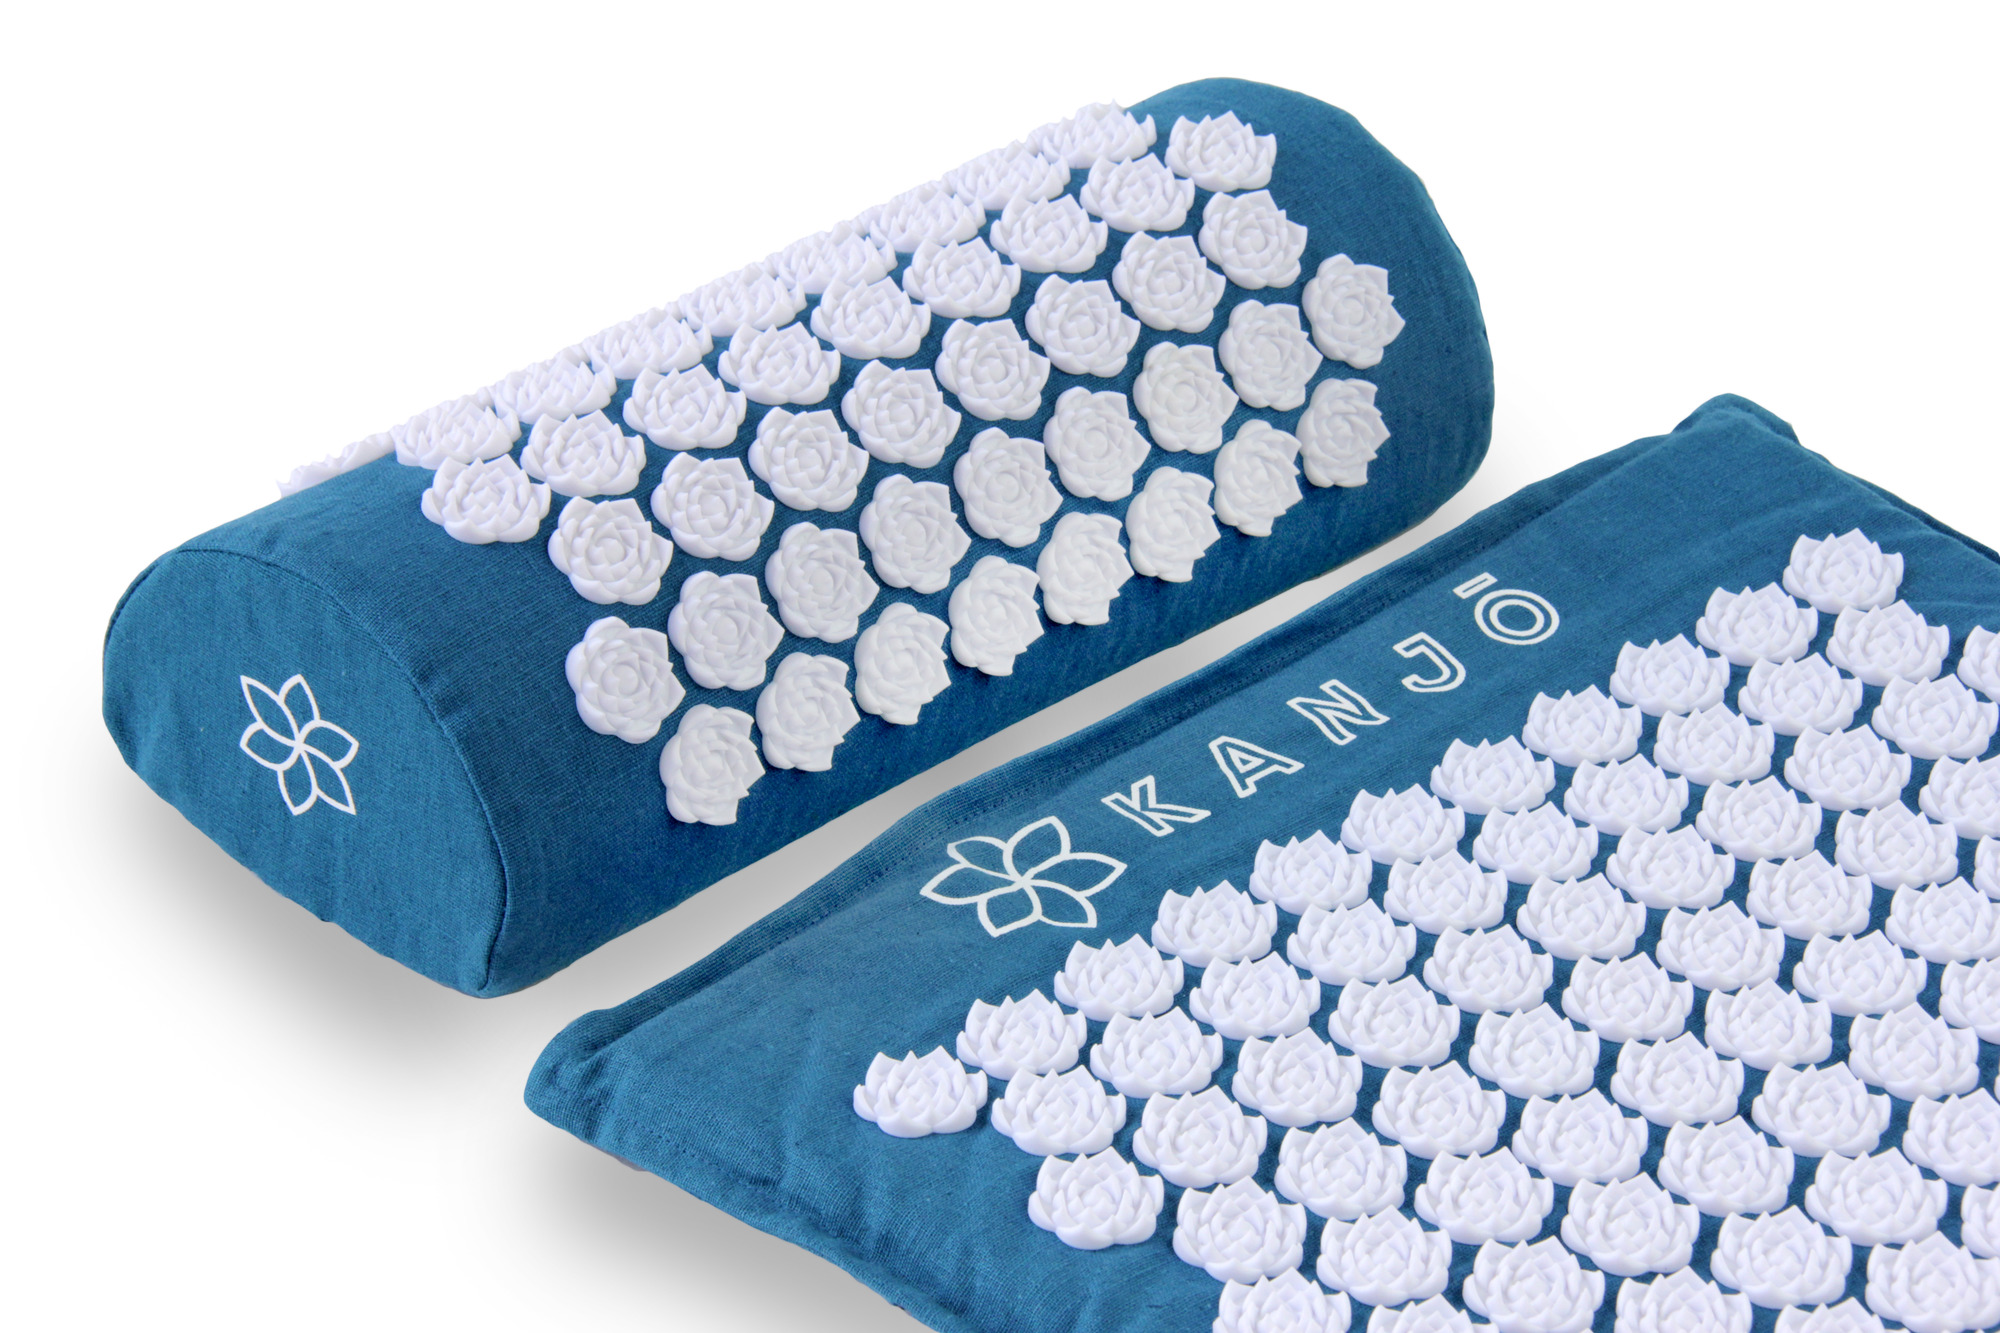 Kanjō Memory Acupressure Mat Set With Pillow Sapphire